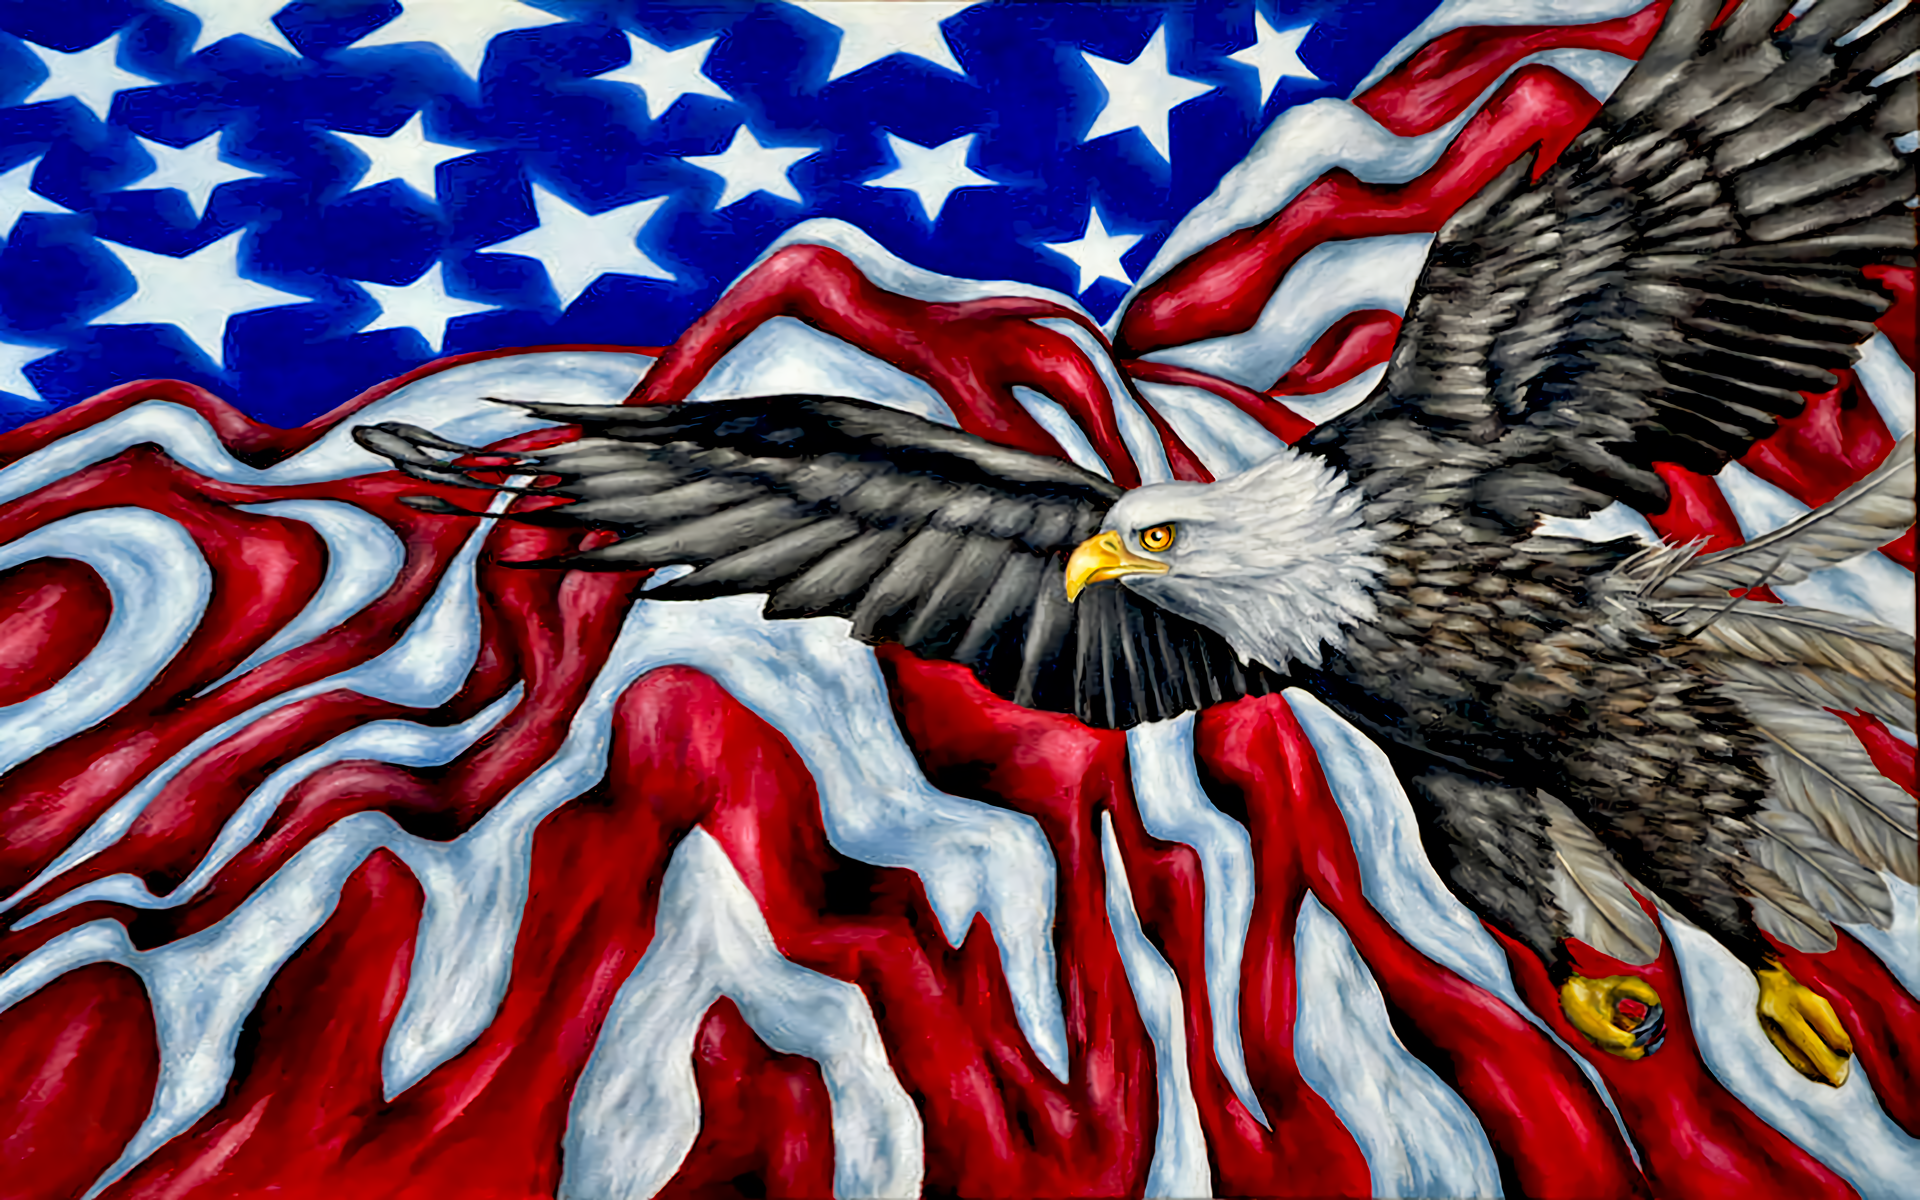 Patriotic Bald Eagle Wallpaper Wallpapersafari Full Hd And Background 1920x1200